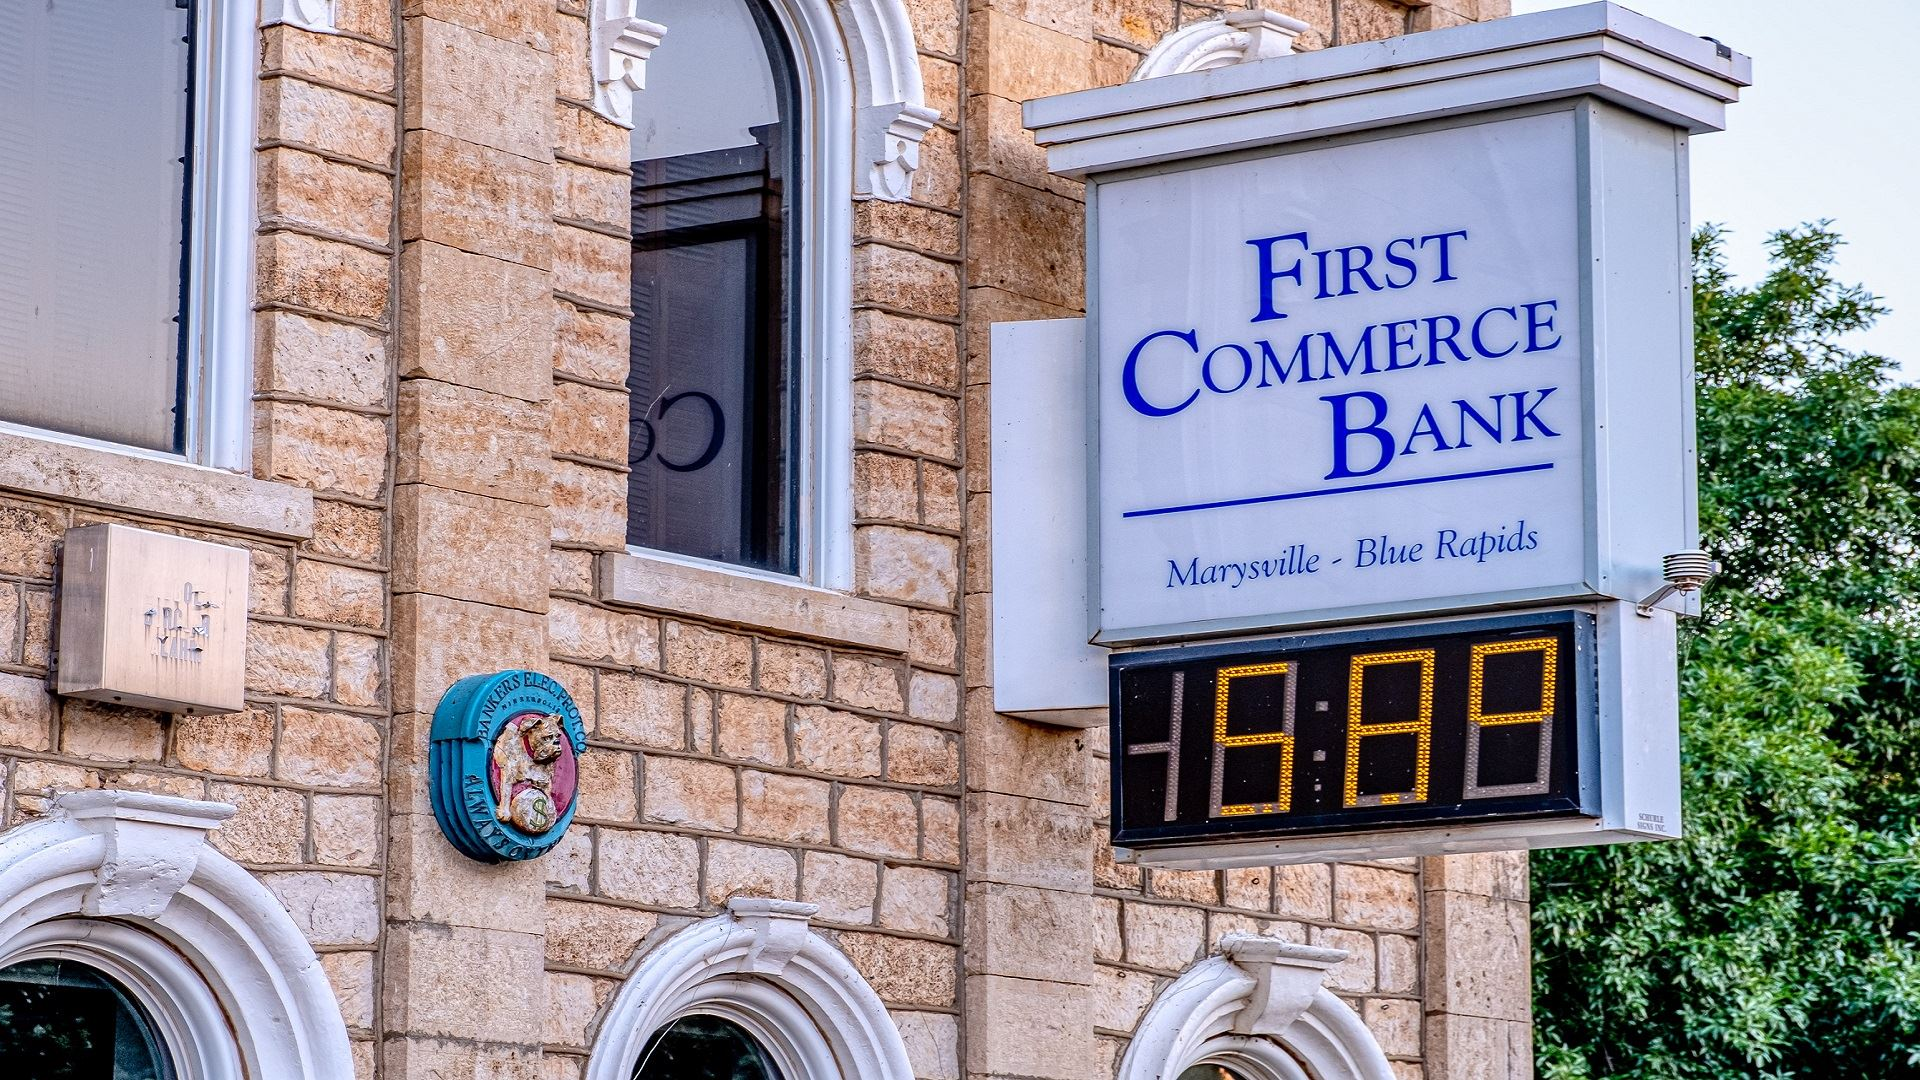 First Commerce Bank building and sign